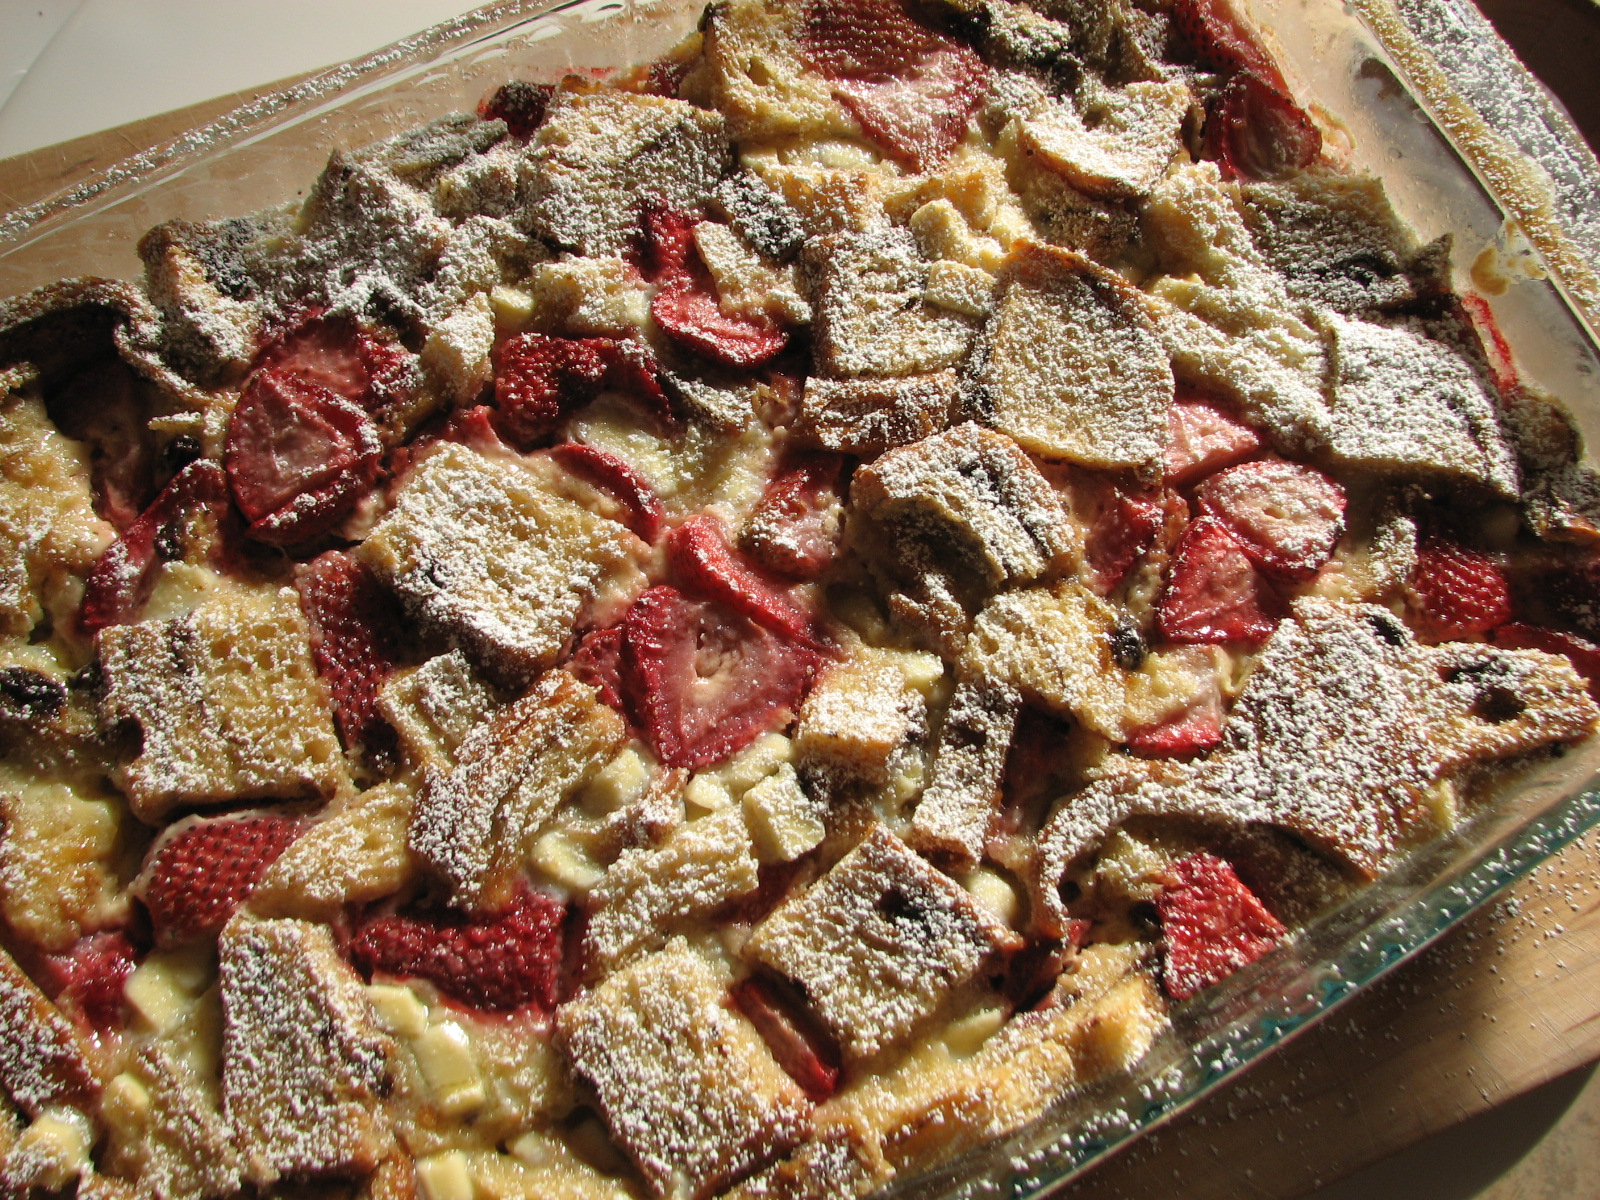 ... linking this up to Mission Food's Bread Pudding of The Month Club